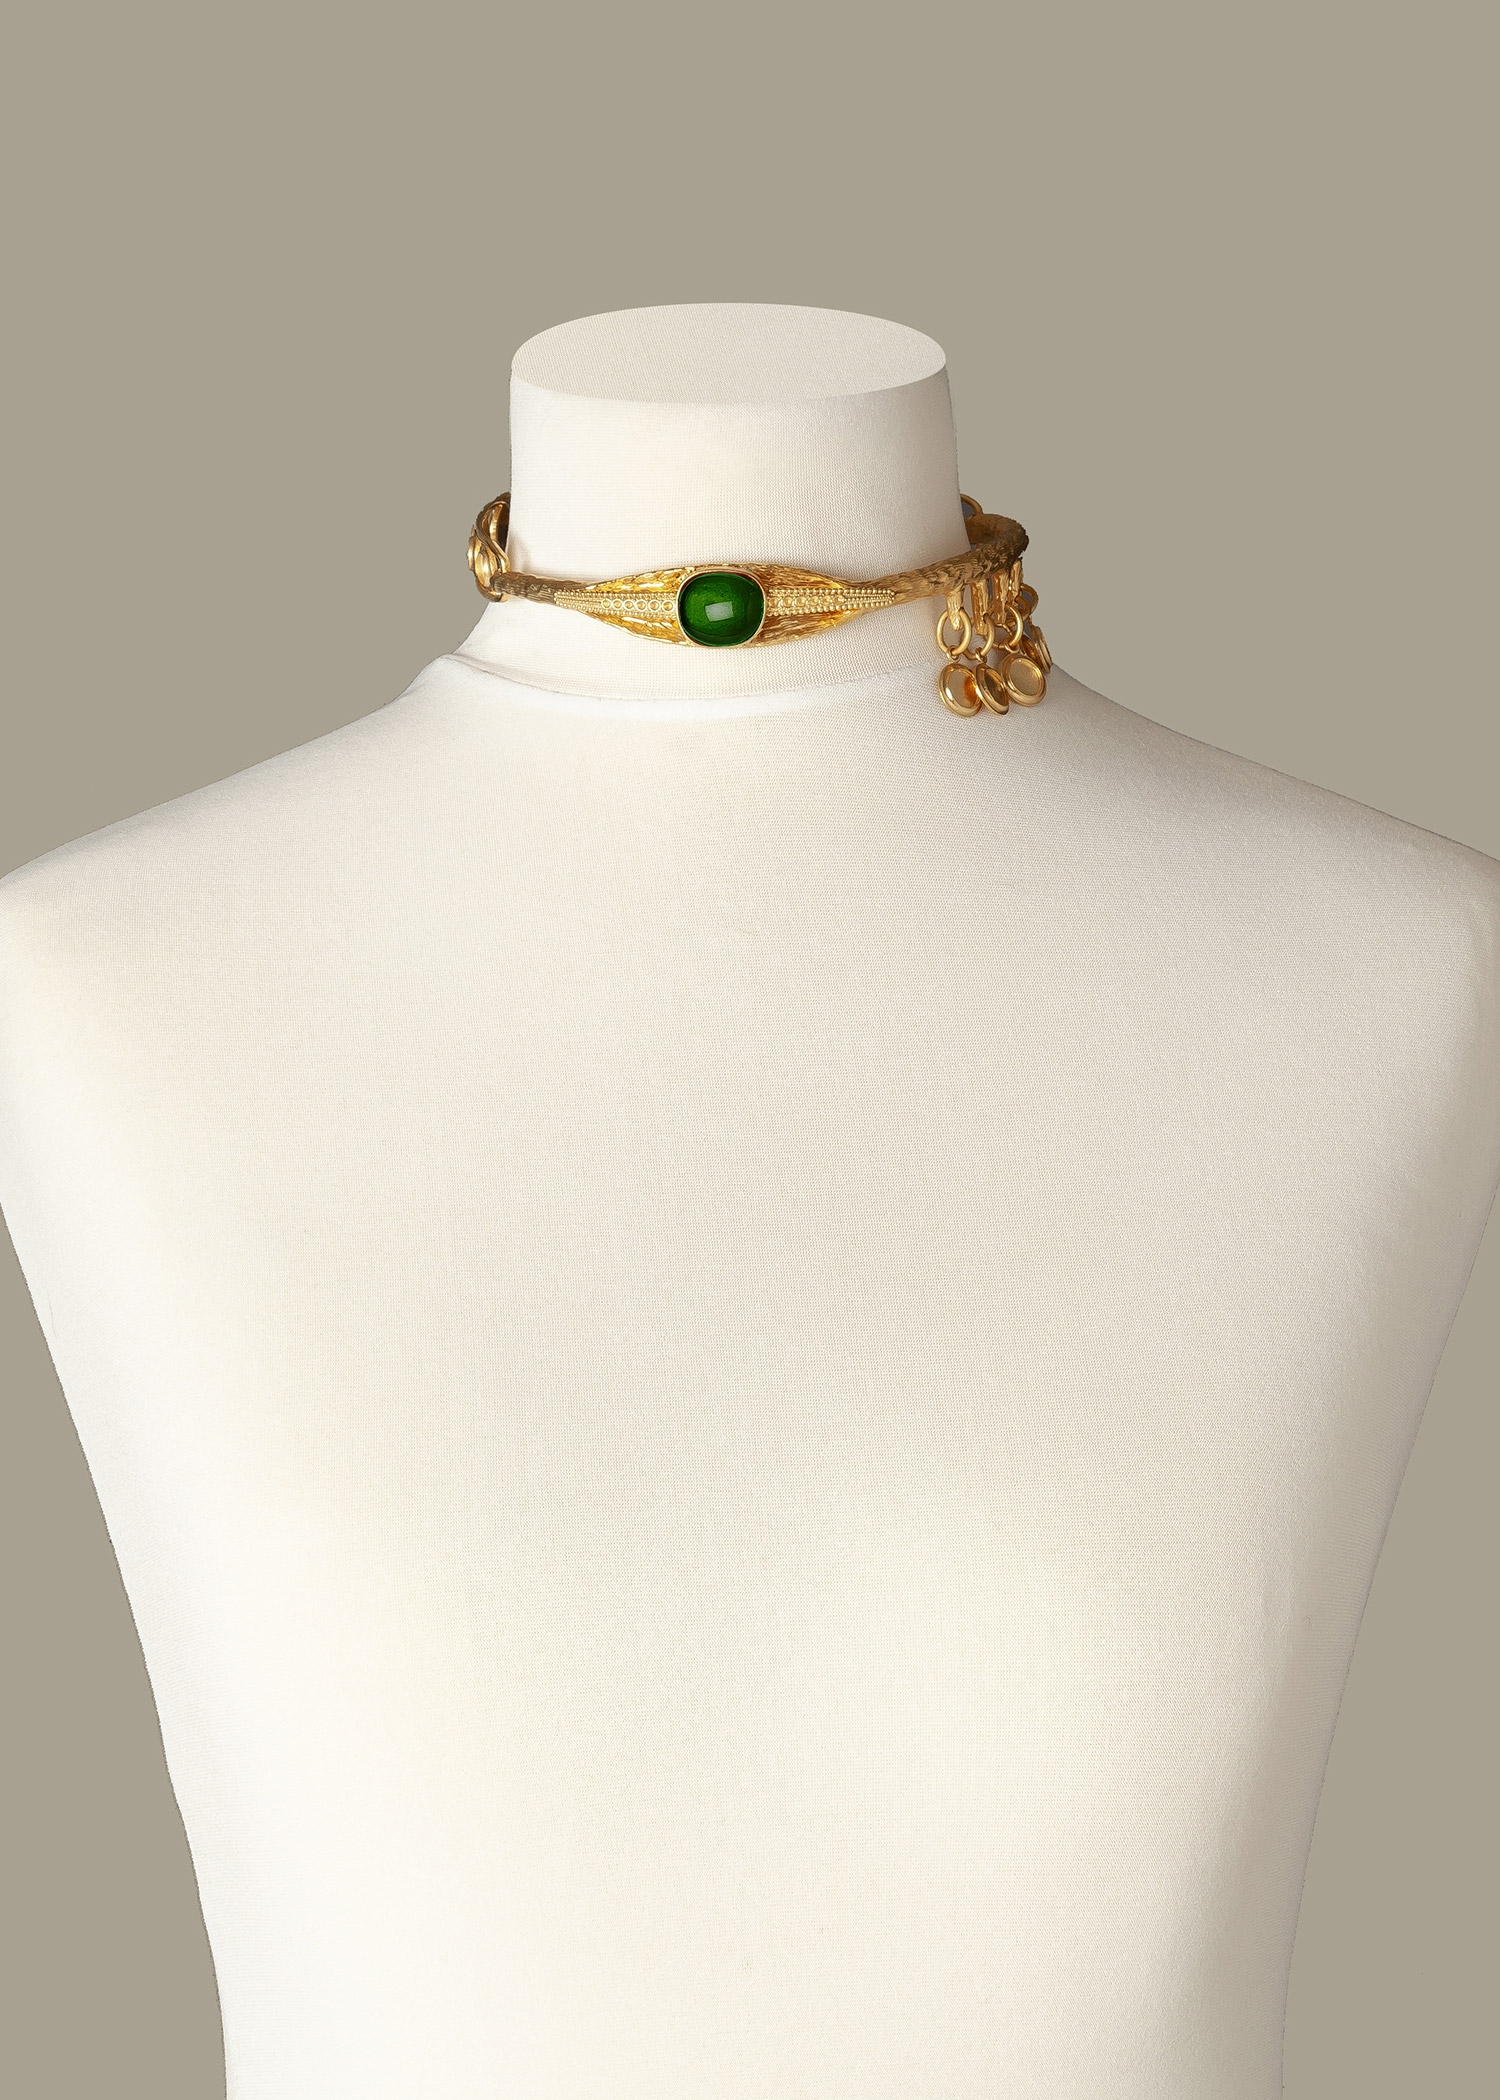 Emerald Eye Luxury Necklace by Sonia Petroff on curated-crowd.com